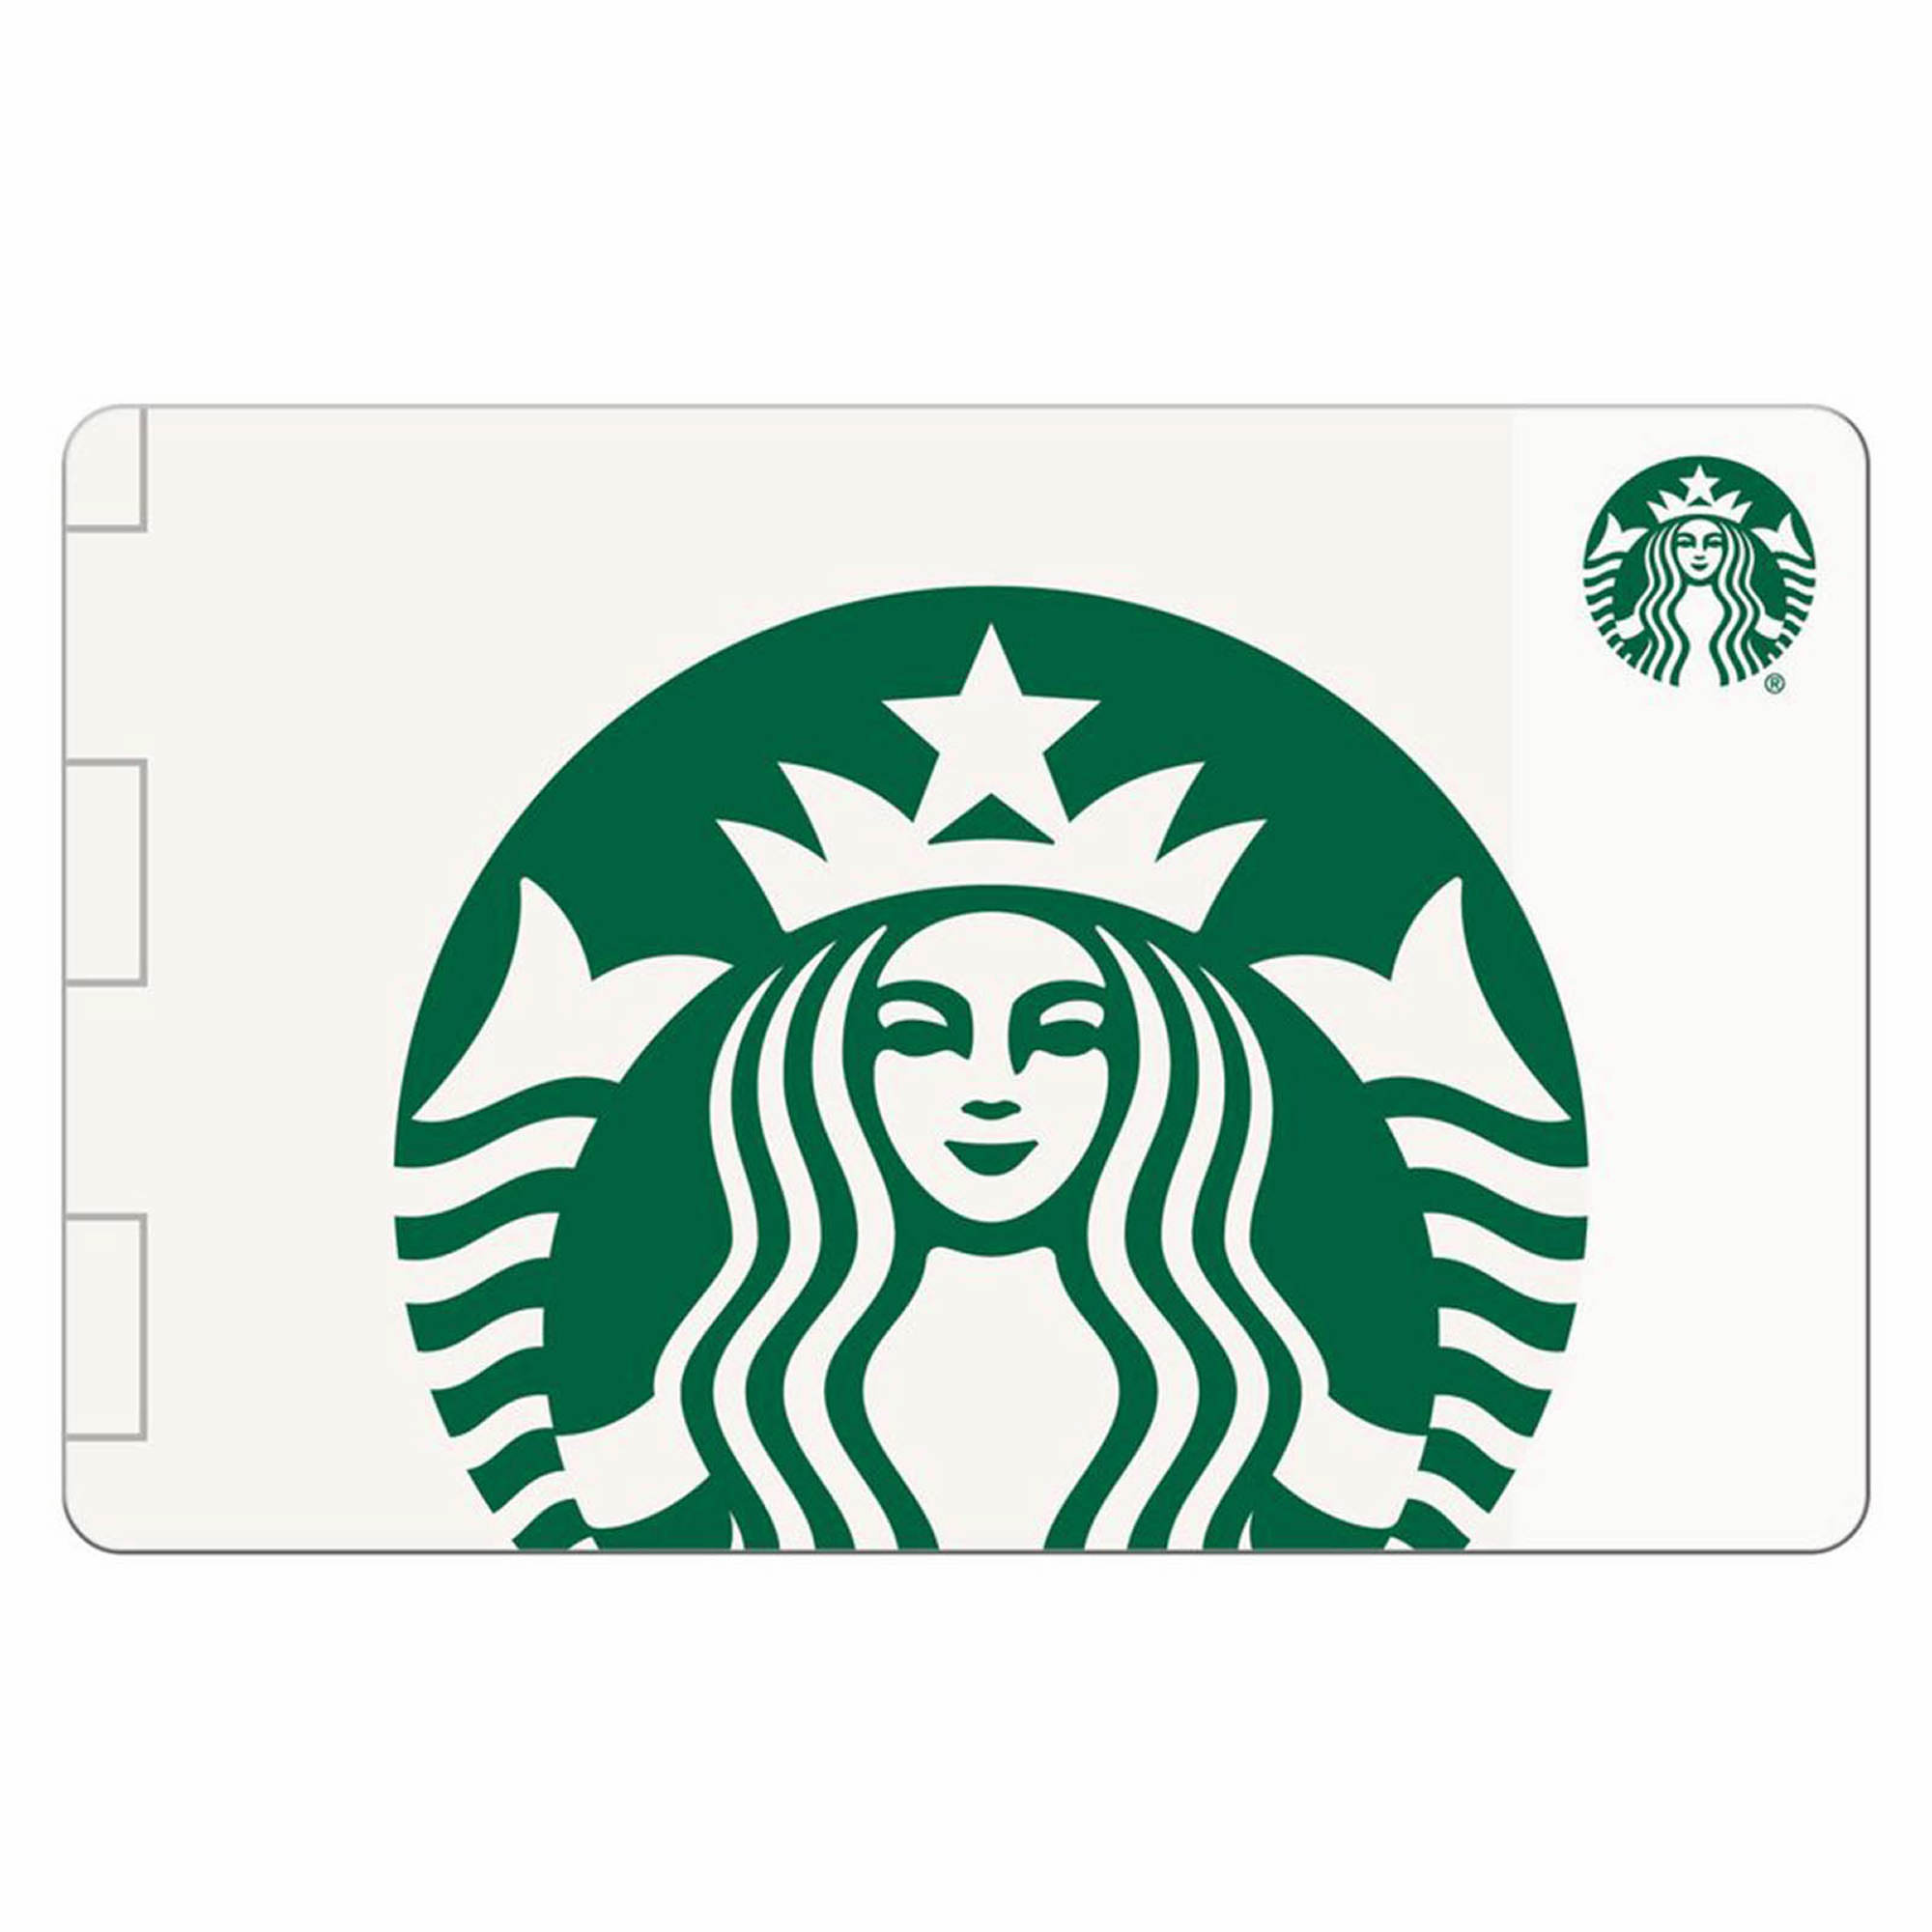 map of starbucks locations with 15 Starbucks Gift Card Product on 15 Starbucks Gift Card product moreover Consumption as well Mapping supply chains in the global economy also The Markets Global Ceos Are Most Optimistic About besides Dunkin Donuts Wifi Nyc.